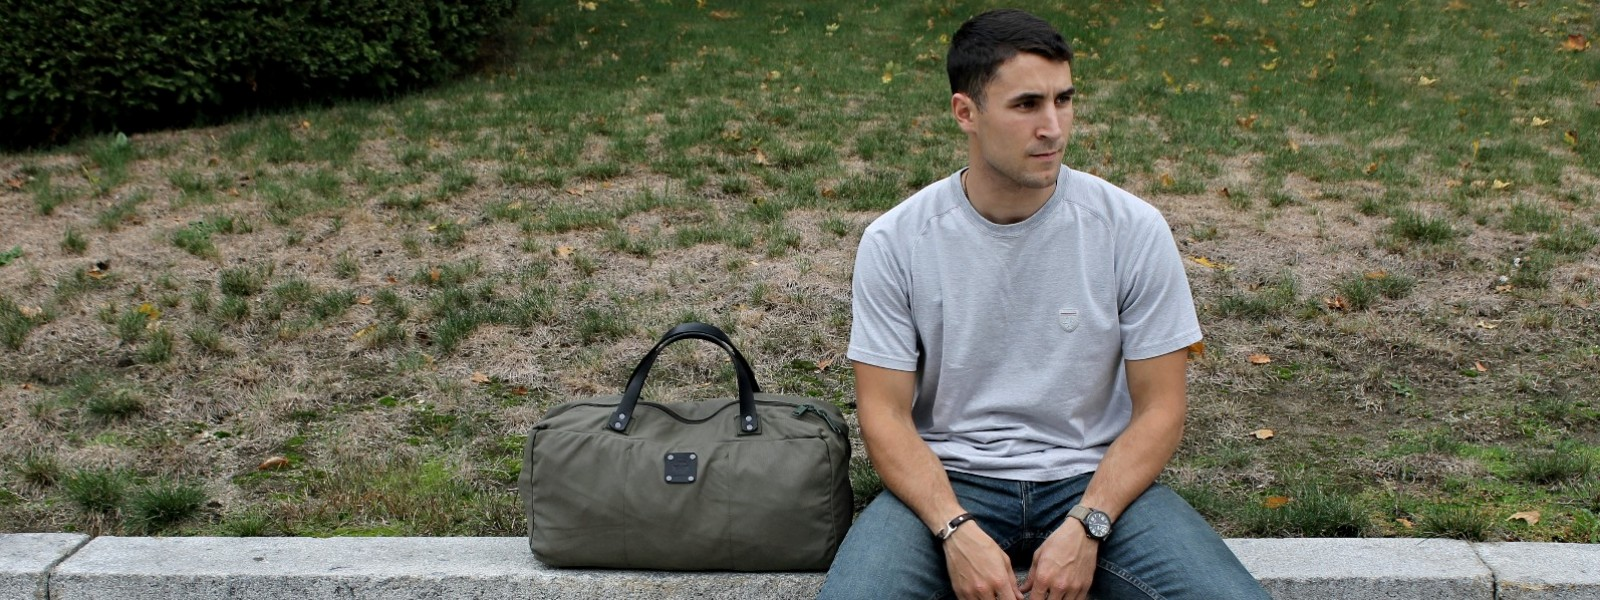 American Bench Craft Rescued Army Surplus Canvas Duffel Bag with Riveted Leather Straps Made in USA Reading Ma Boston